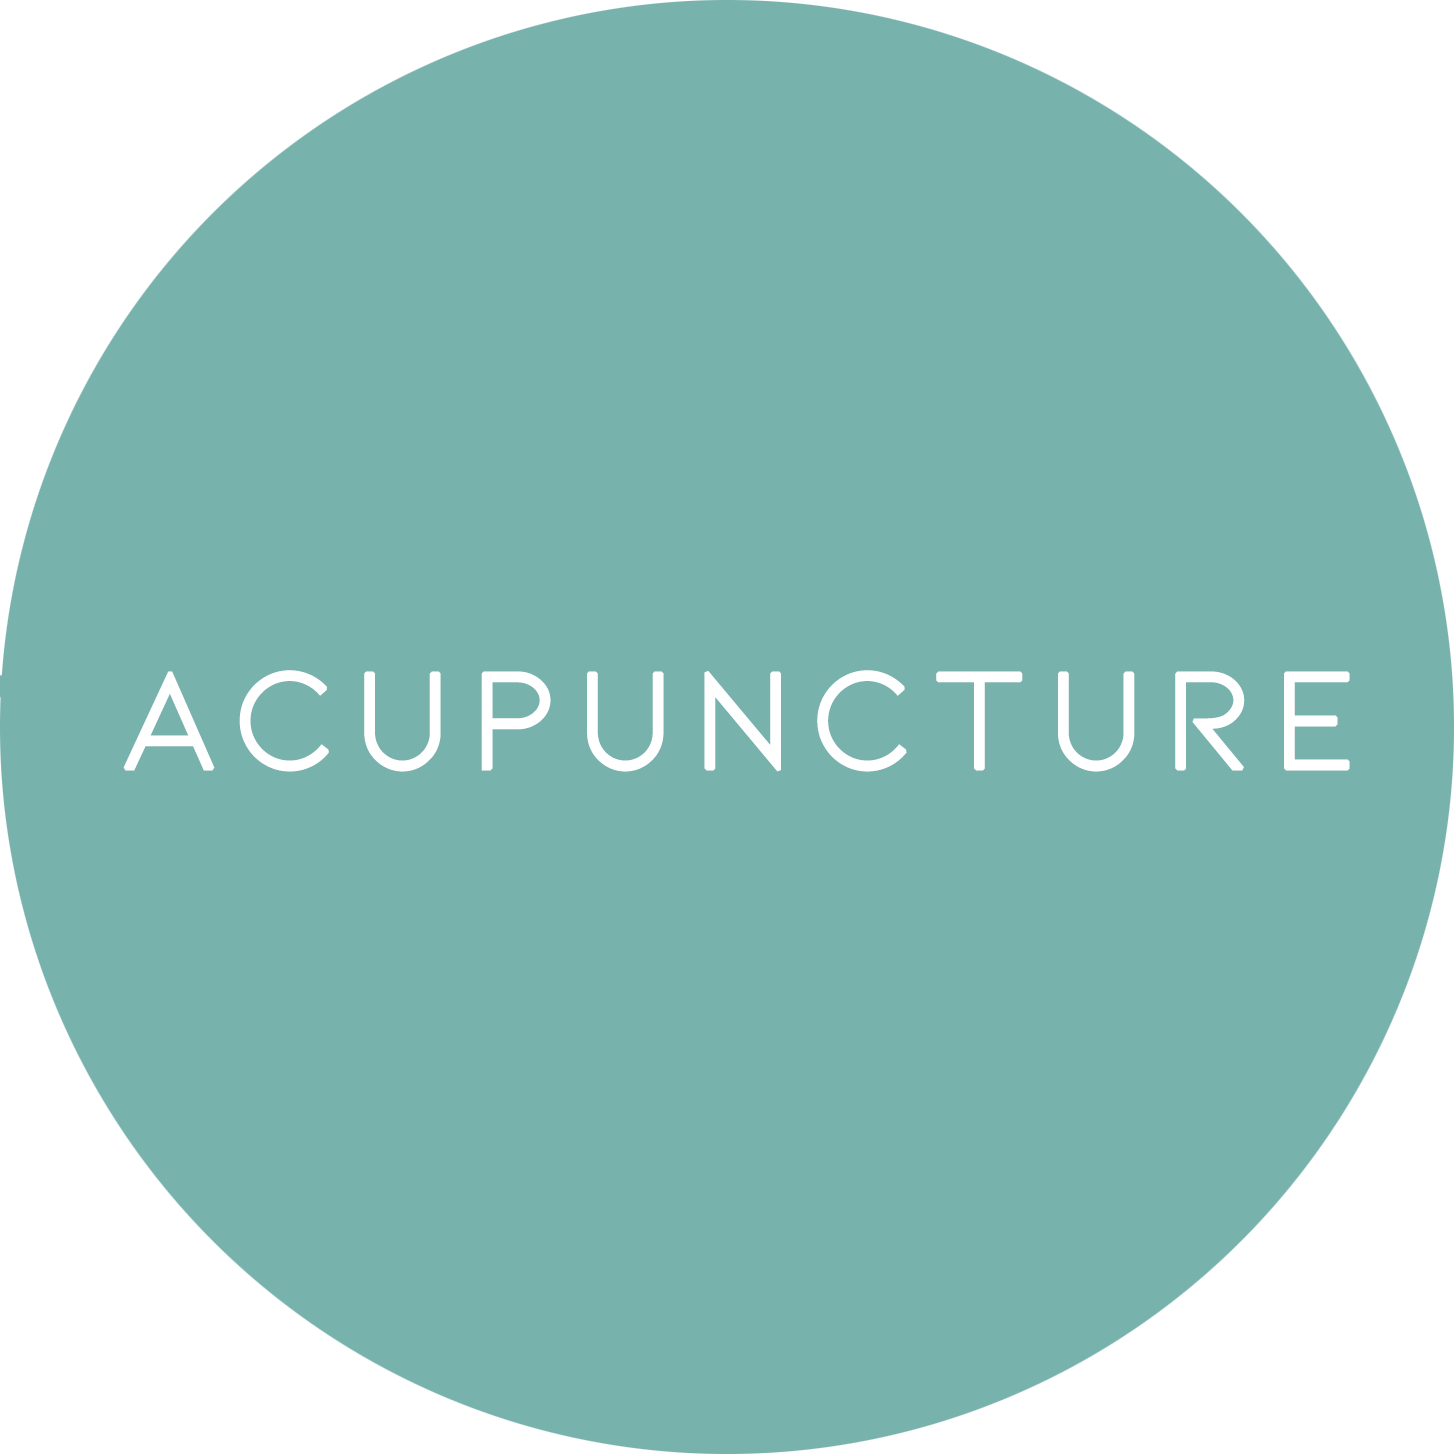 acupuncture icon.png